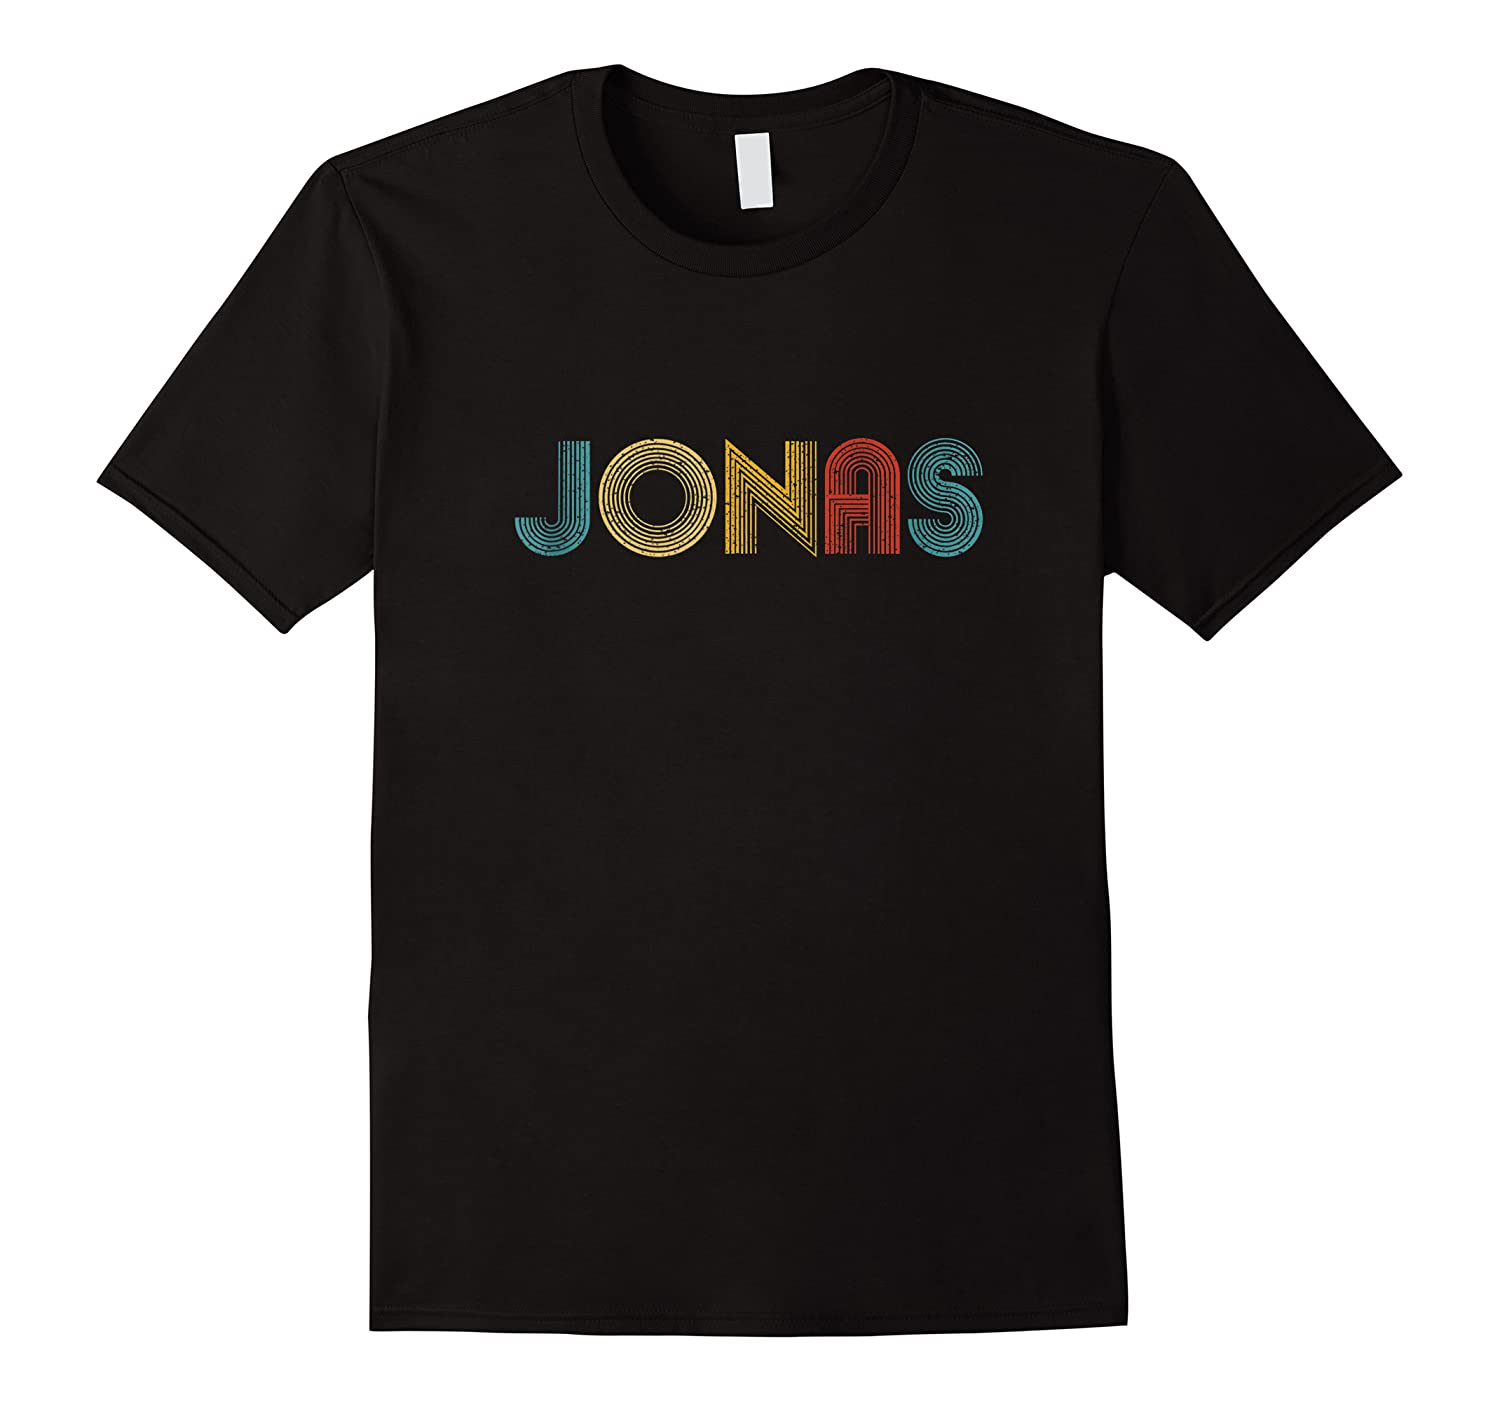 Jonas First Given Name Pride Vintage Distressed Tank Top Shirts